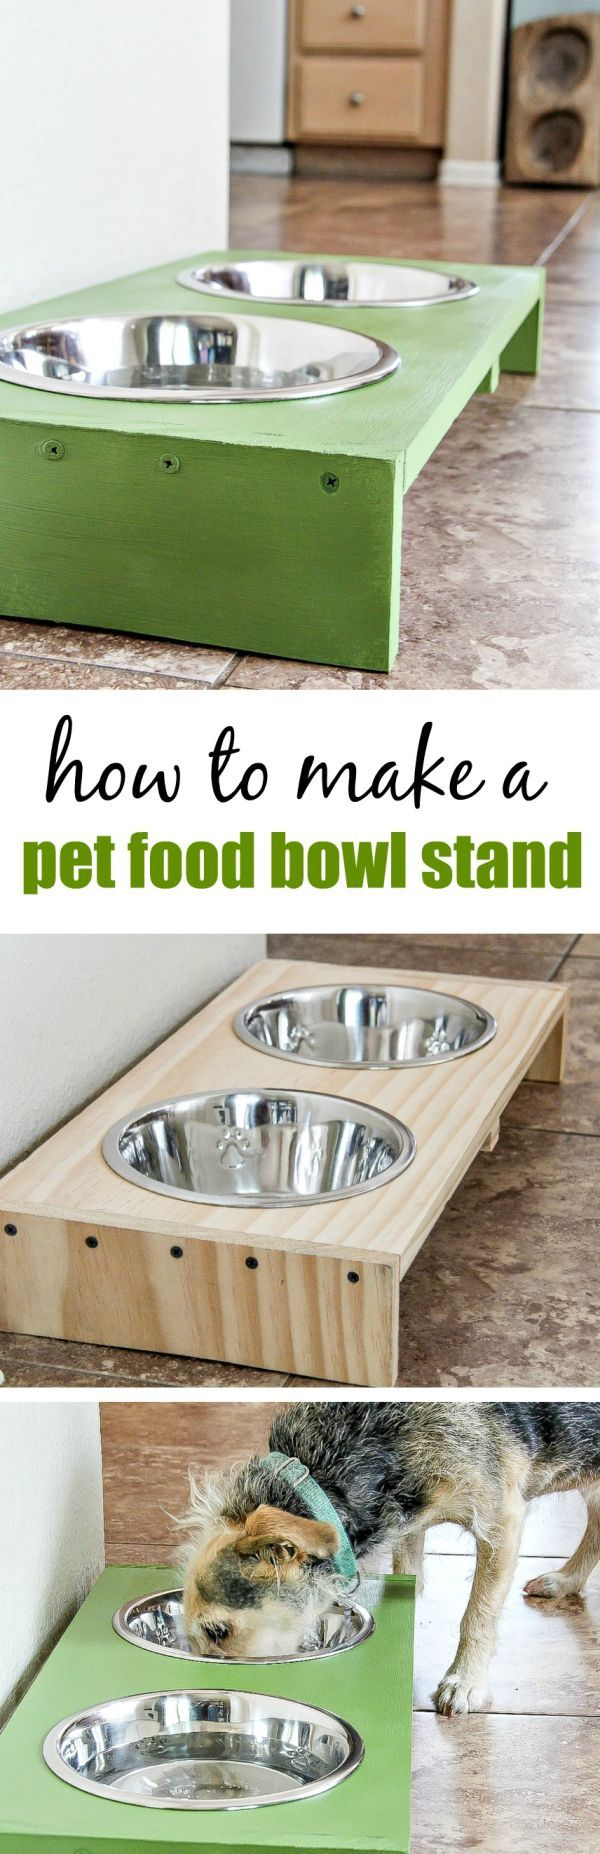 Stop dog food bowls from sliding around the floor with this easy DIY pet food bowl stand. This project was completed in partnership with Freshpet, the refrigerated and all natural pet food made with fresh ingredients. #FreshpetEffect AD